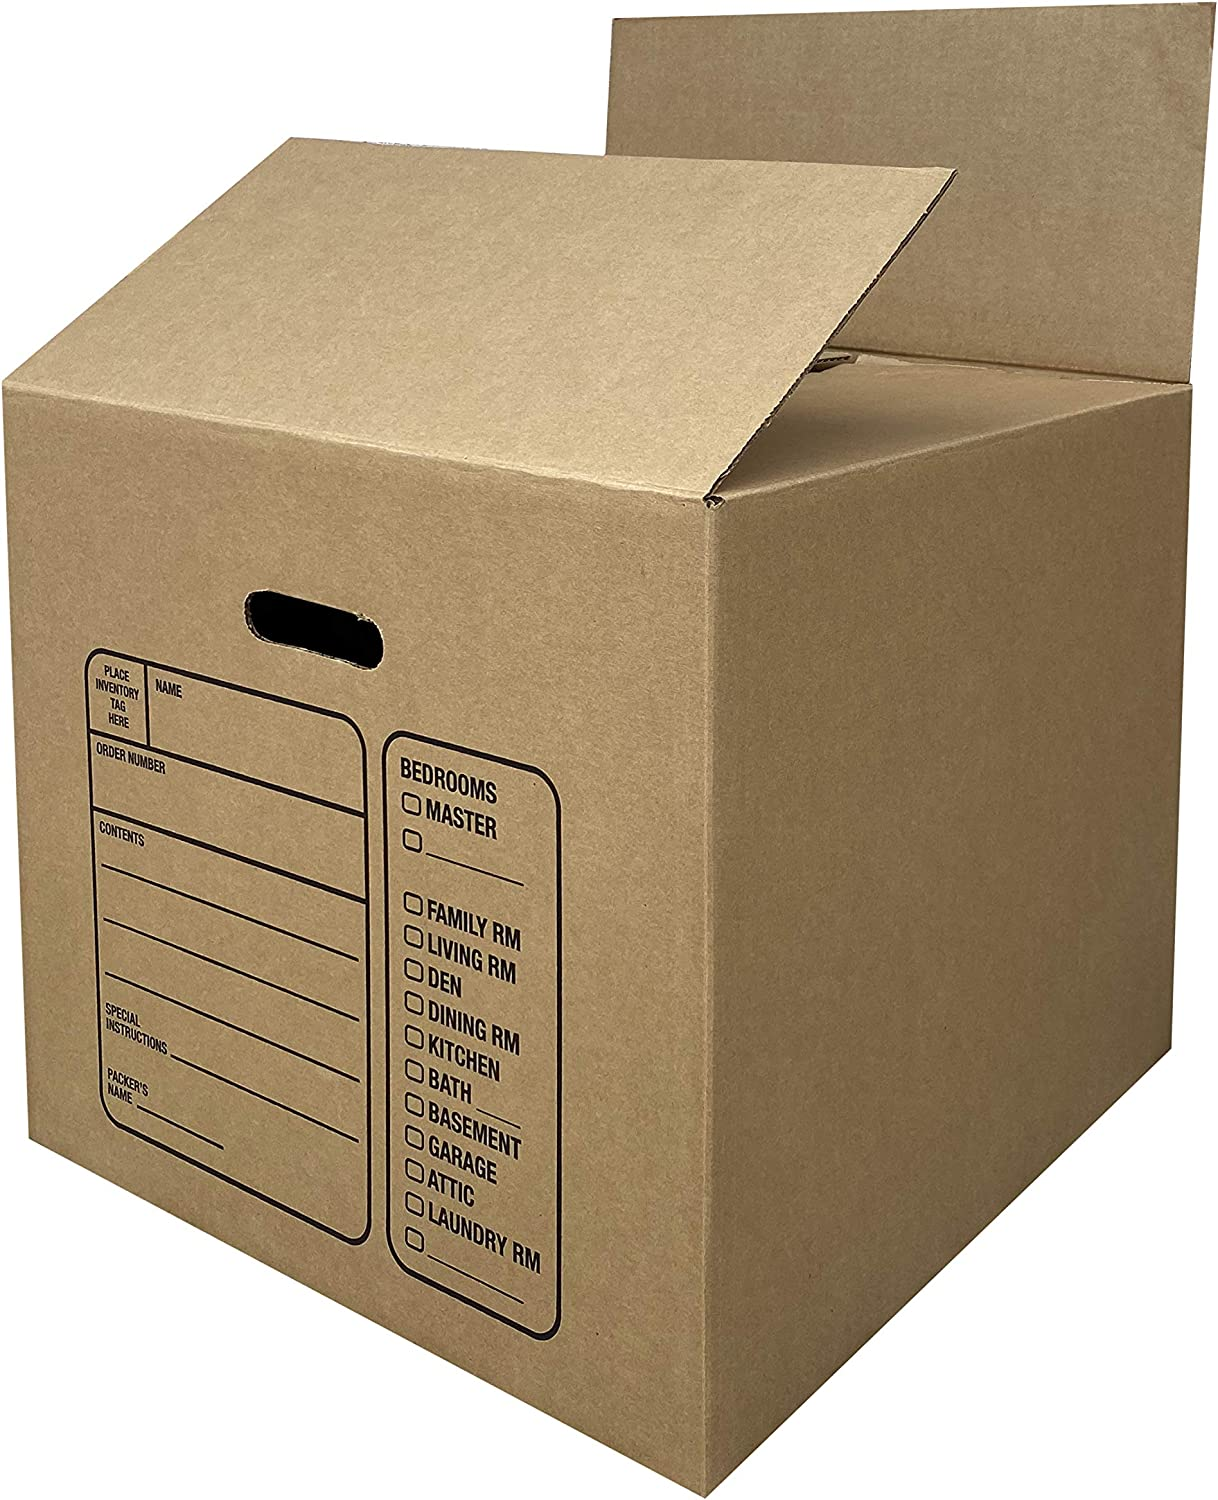 18x18x6 New Corrugated Boxes for Moving or Shipping Needs 32 ECT